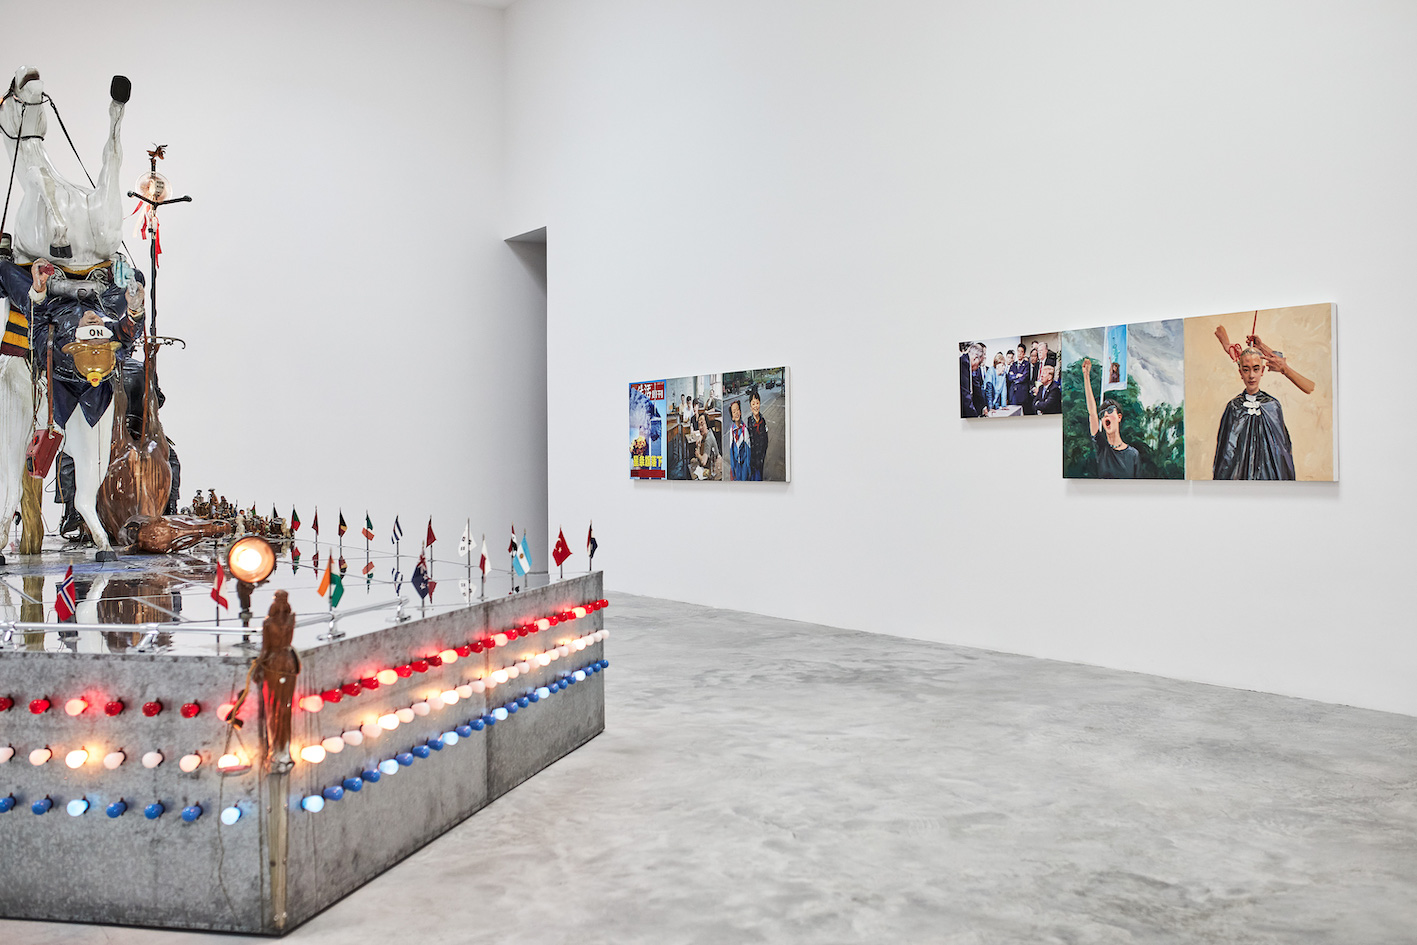 """Installation view of the exhibition """"The Red Bean Grows in the South"""", Faurschou New York, 2019. Photo by Ed Gumuchian, © Faurschou Foundation"""